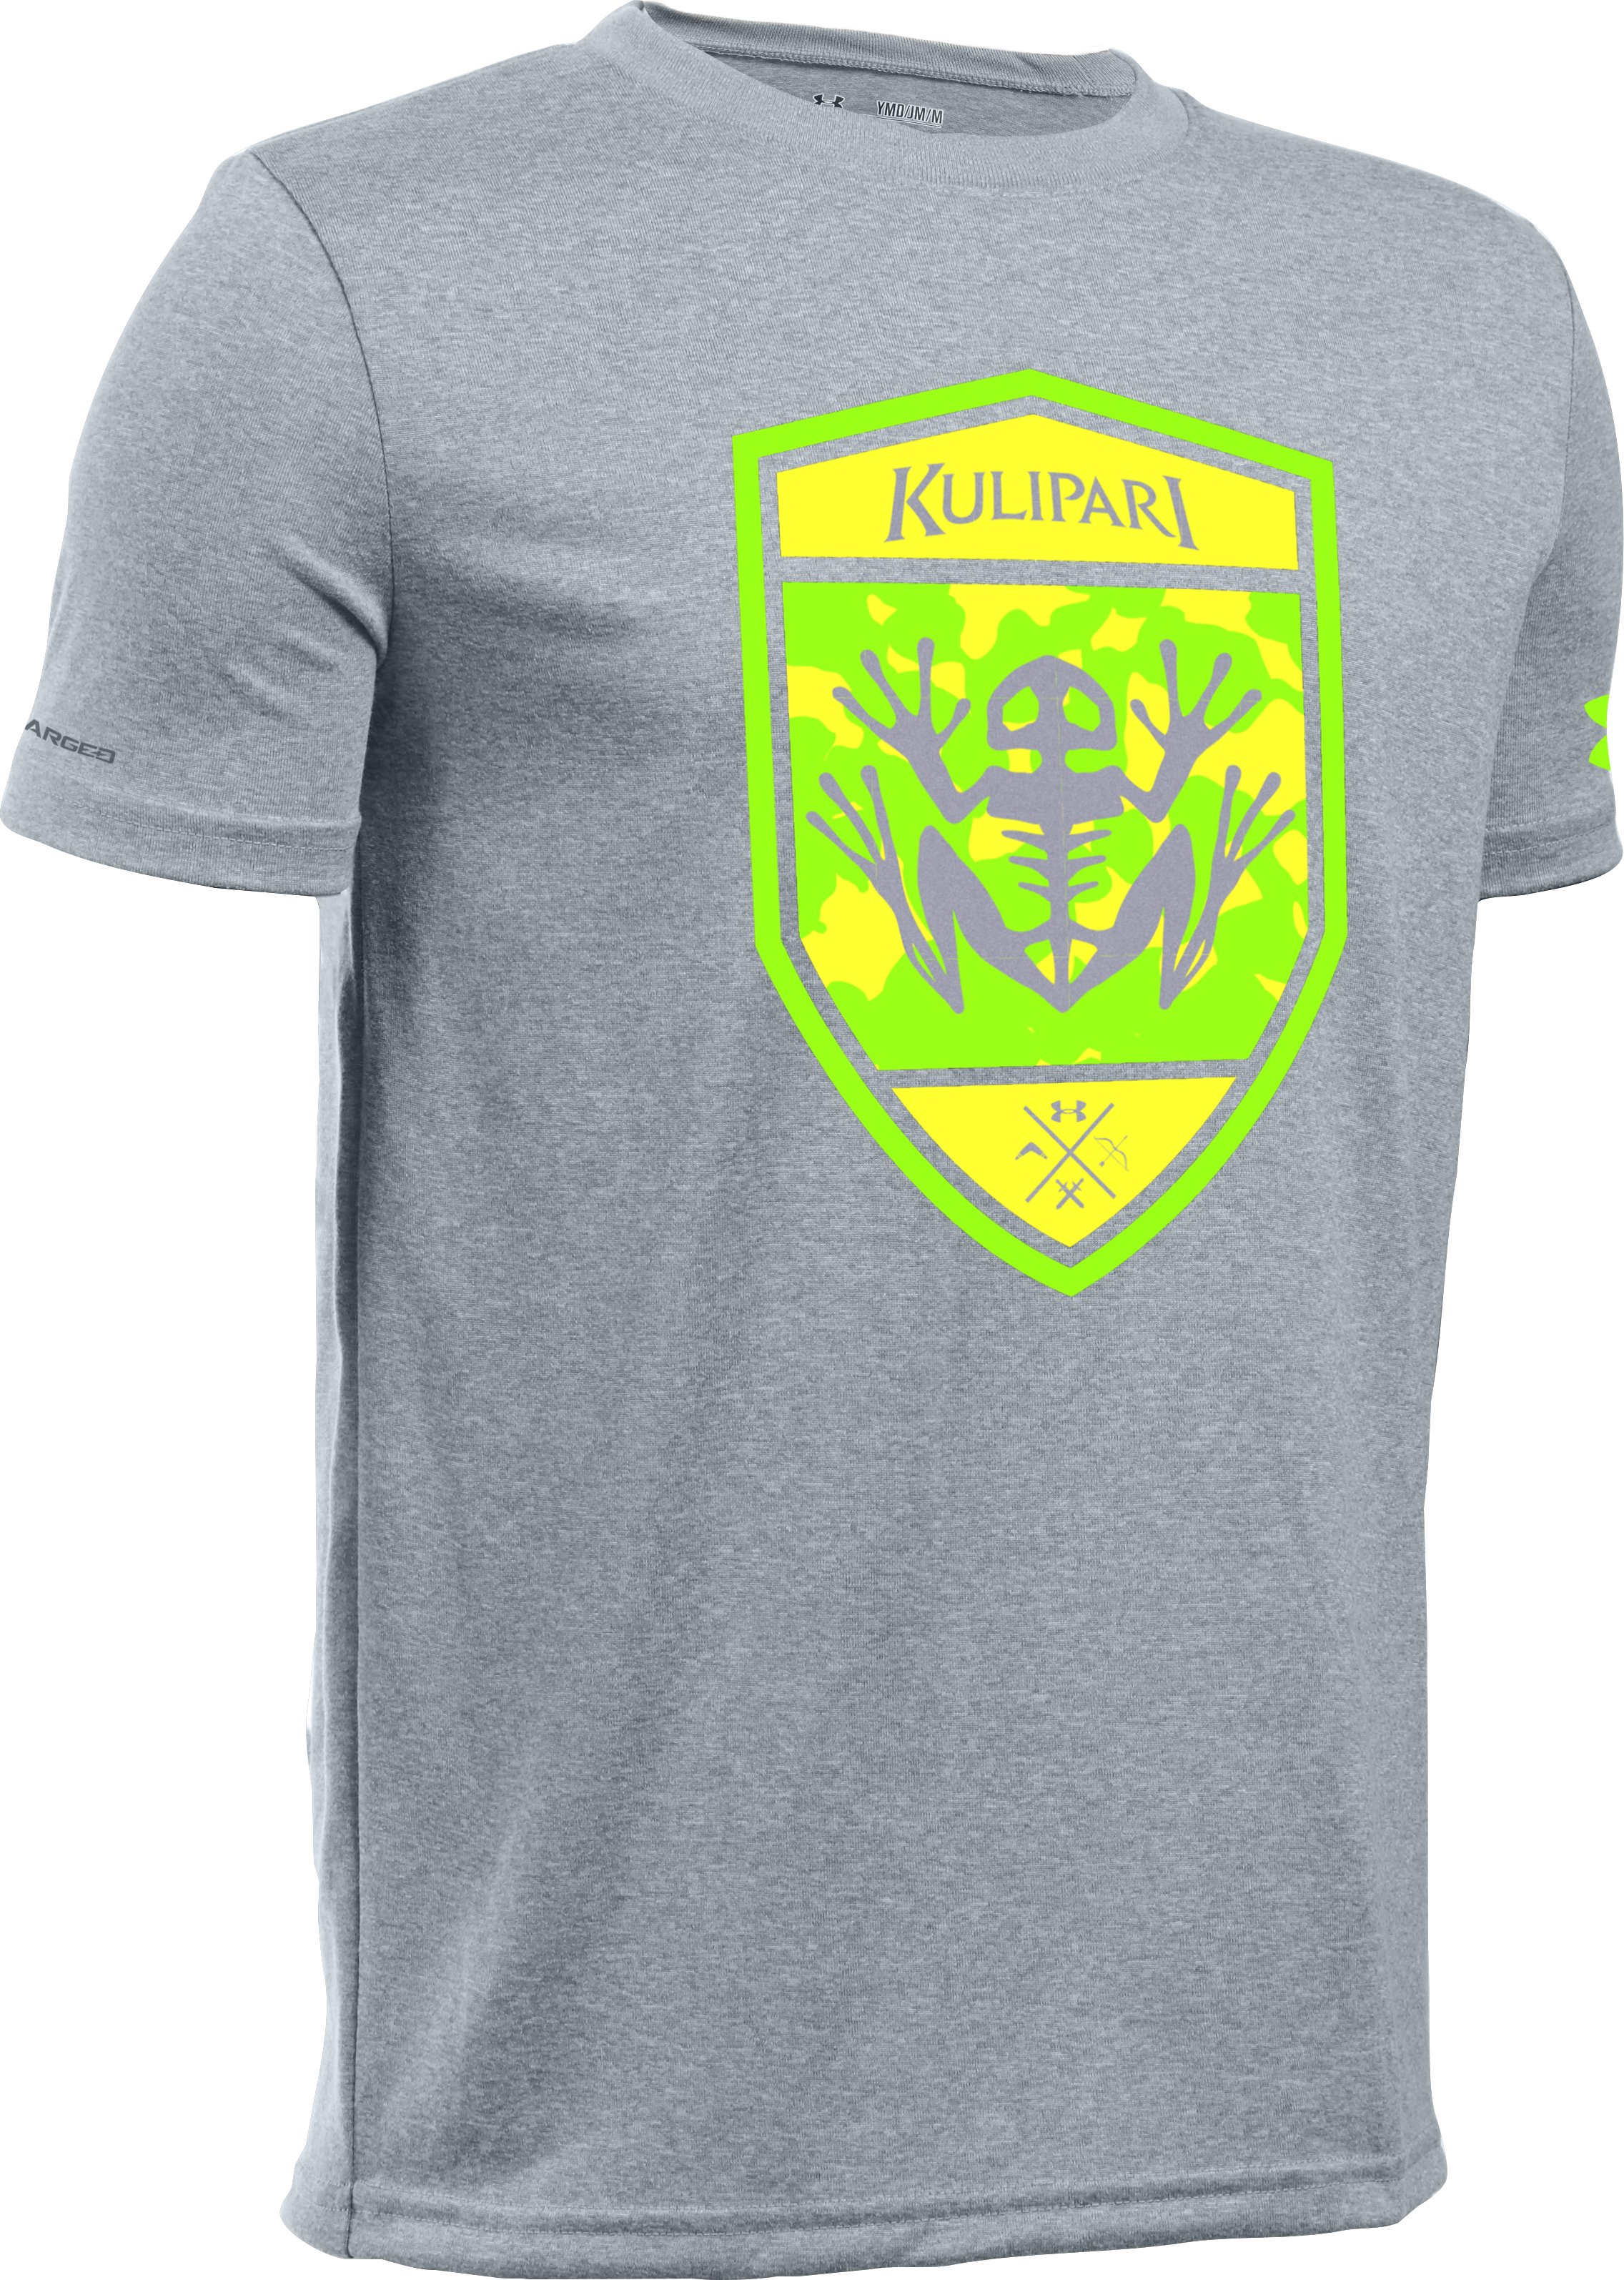 Kids' Kulipari UA Frog Battalion T-Shirt, True Gray Heather